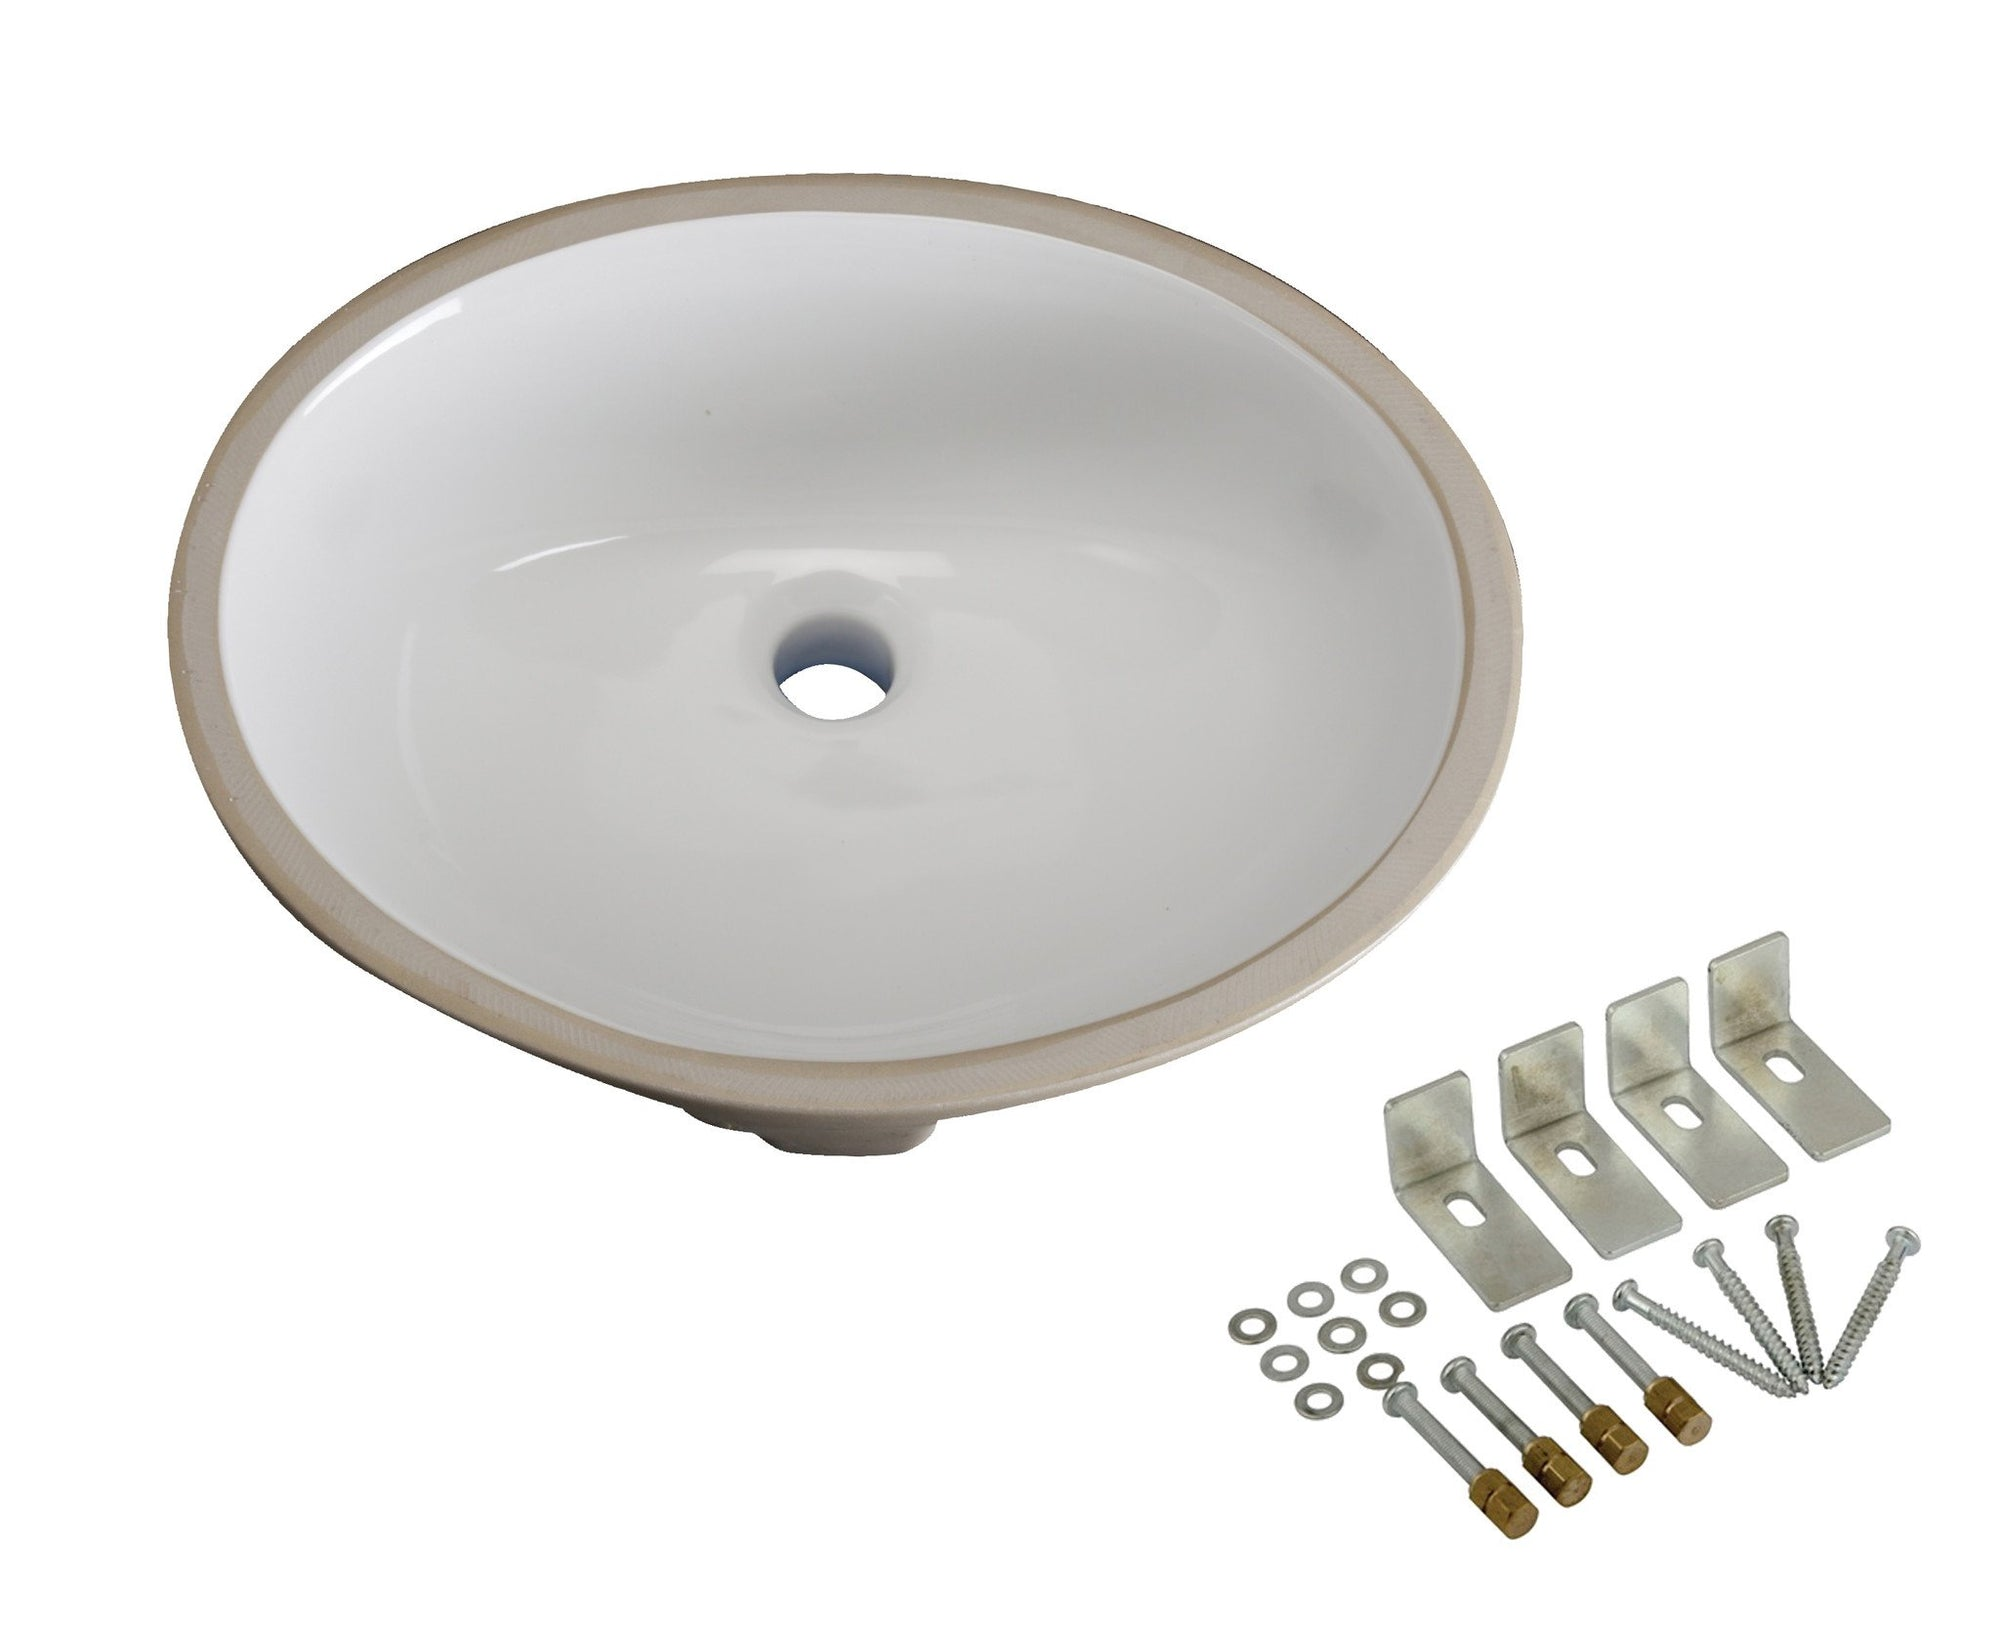 Kingston White Bath Cove White China Oval Undermount Bathroom Sink LBO17146